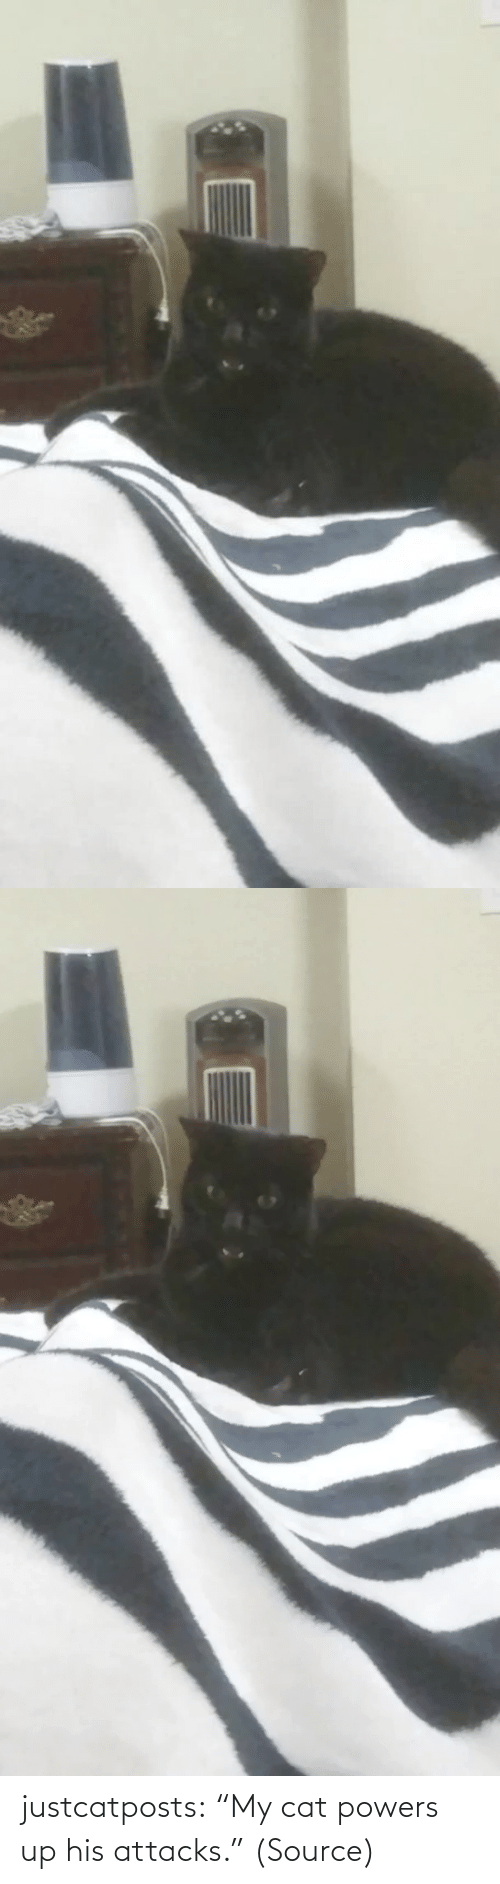 "cat: justcatposts:  ""My cat powers up his attacks."" (Source)"